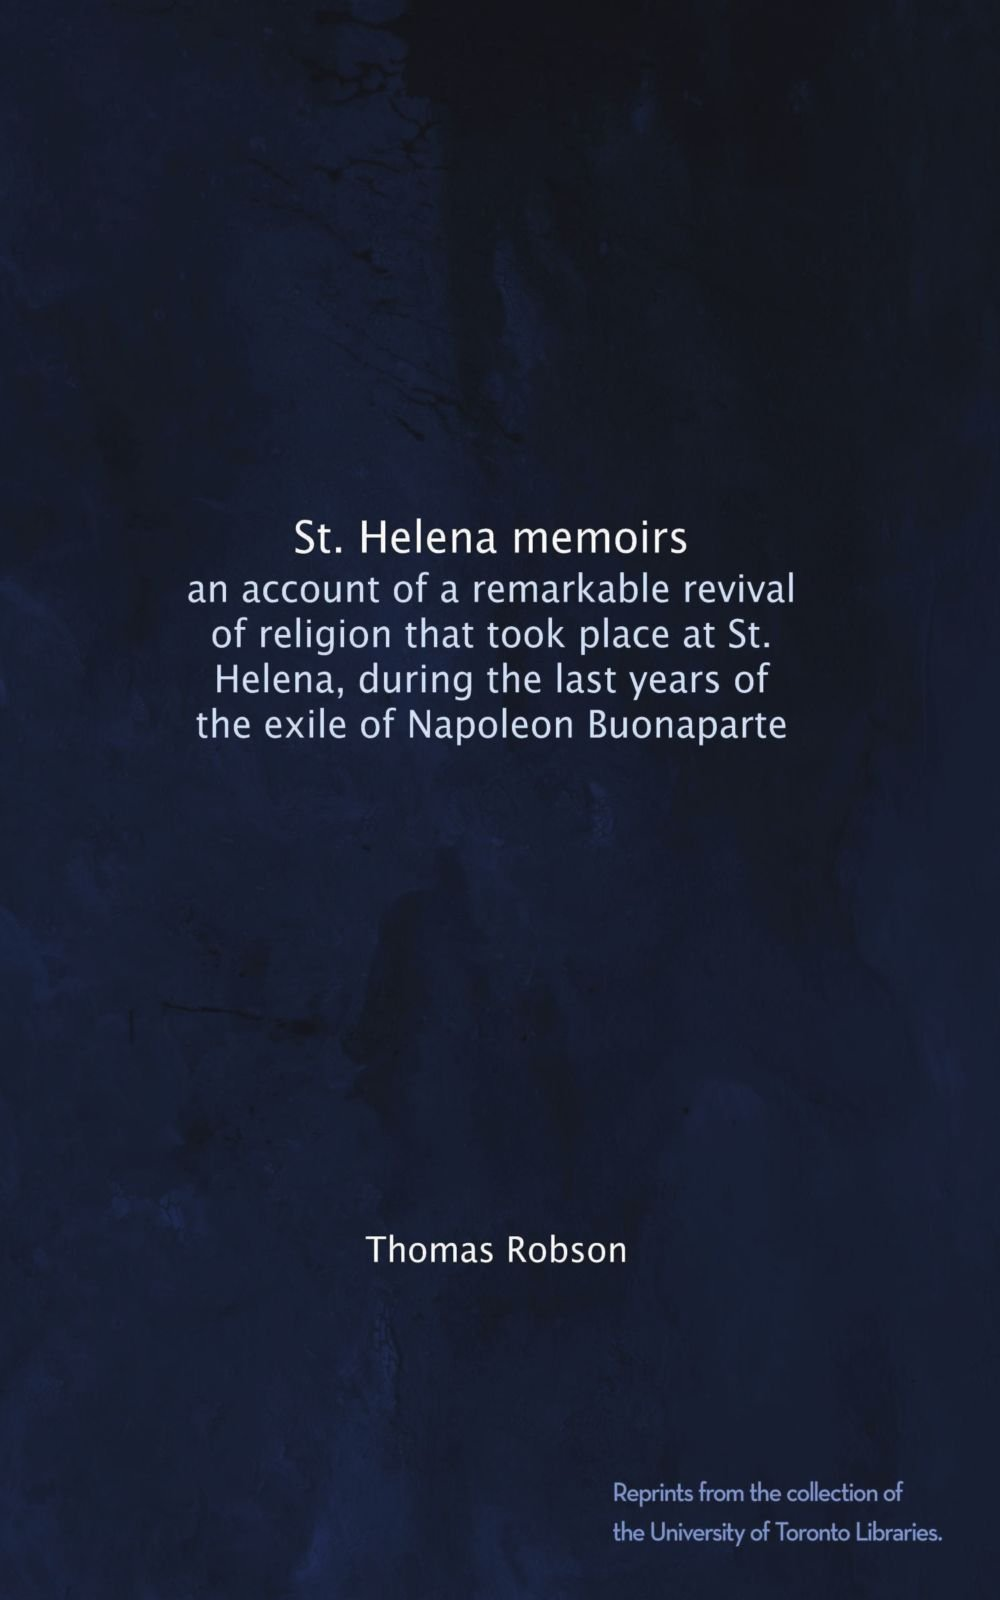 Download St. Helena memoirs: an account of a remarkable revival of religion that took place at St. Helena, during the last years of the exile of Napoleon Buonaparte pdf epub